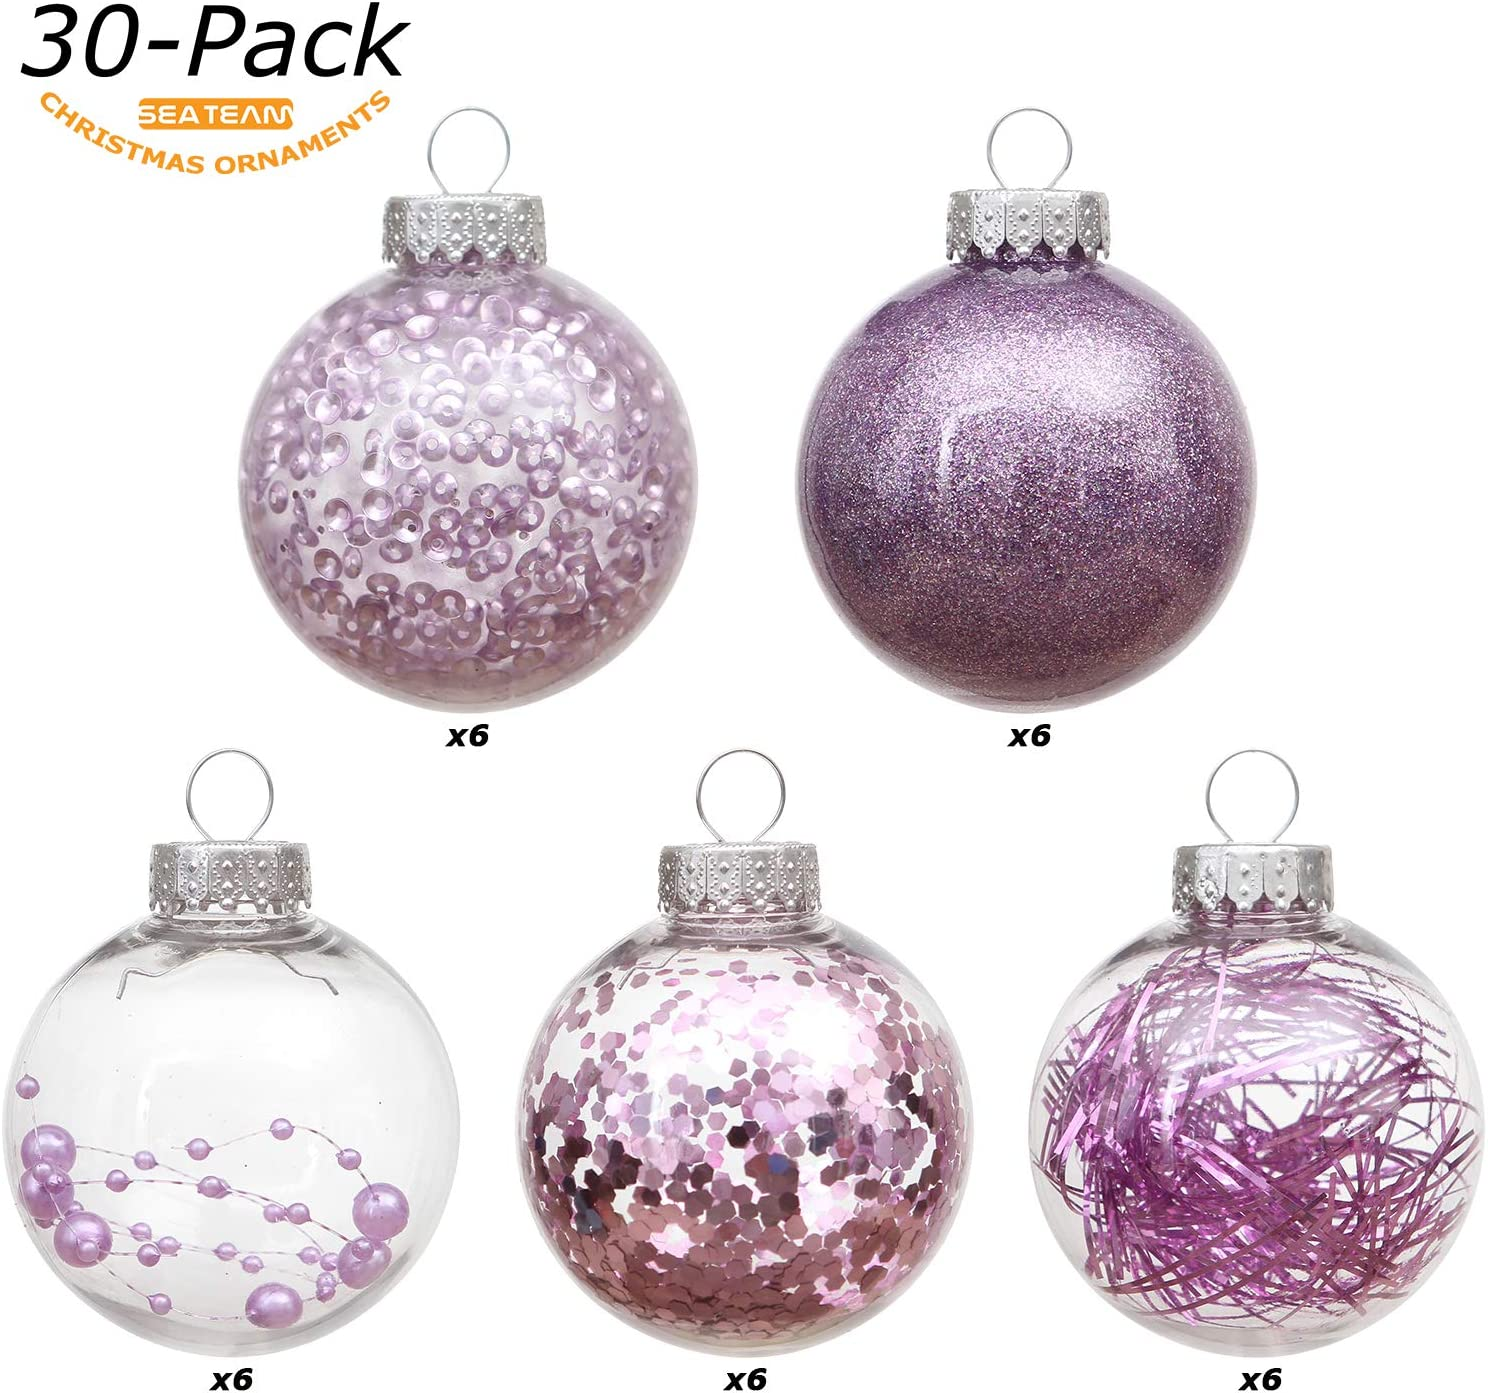 30 Counts, Orchid Sea Team 60mm//2.36 Shatterproof Clear Plastic Christmas Ball Ornaments Decorative Xmas Balls Baubles Set with Stuffed Delicate Decorations